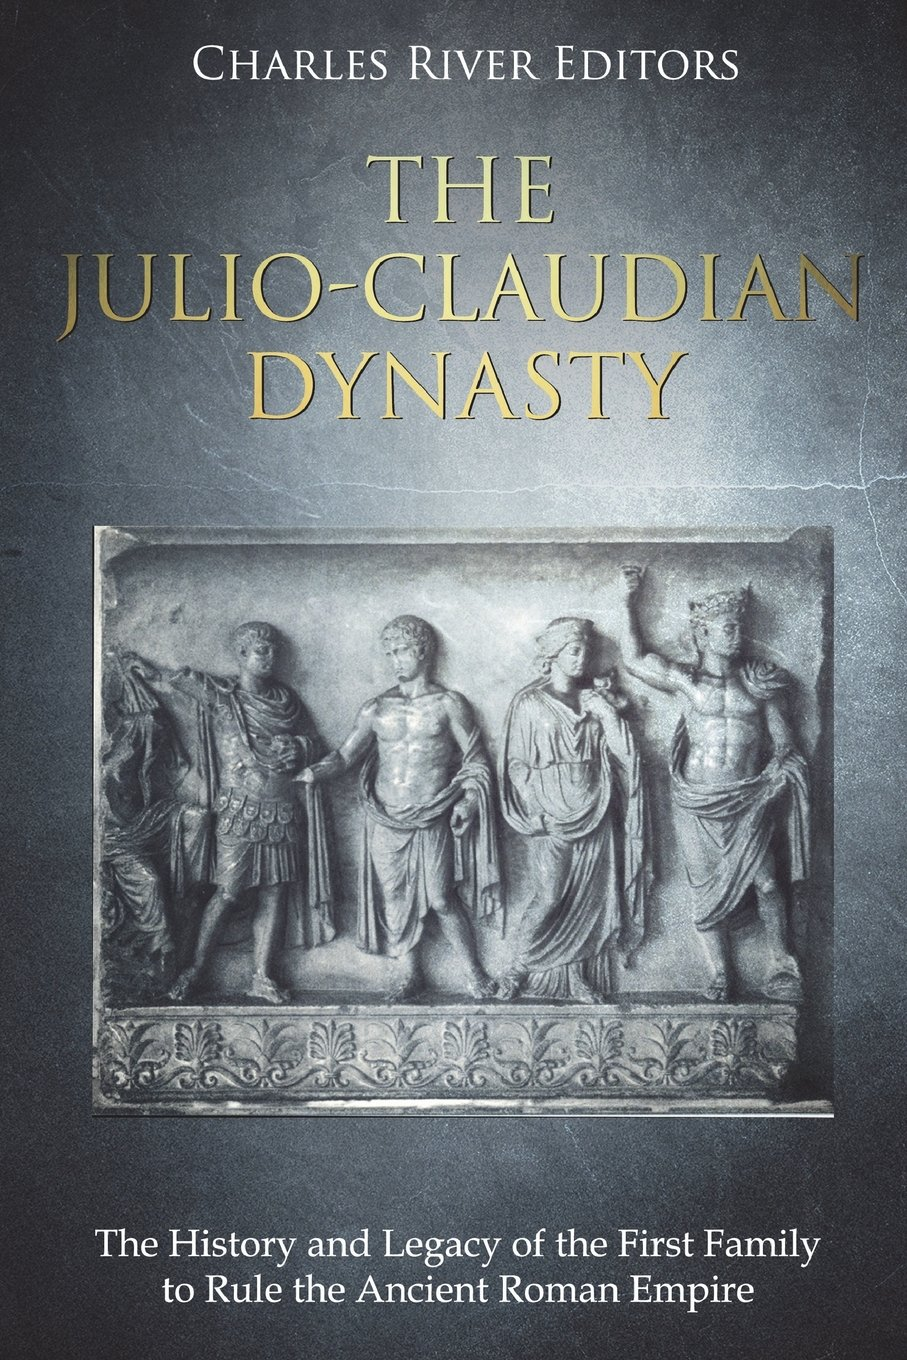 Download The Julio-Claudian Dynasty: The History and Legacy of the First Family to Rule the Ancient Roman Empire pdf